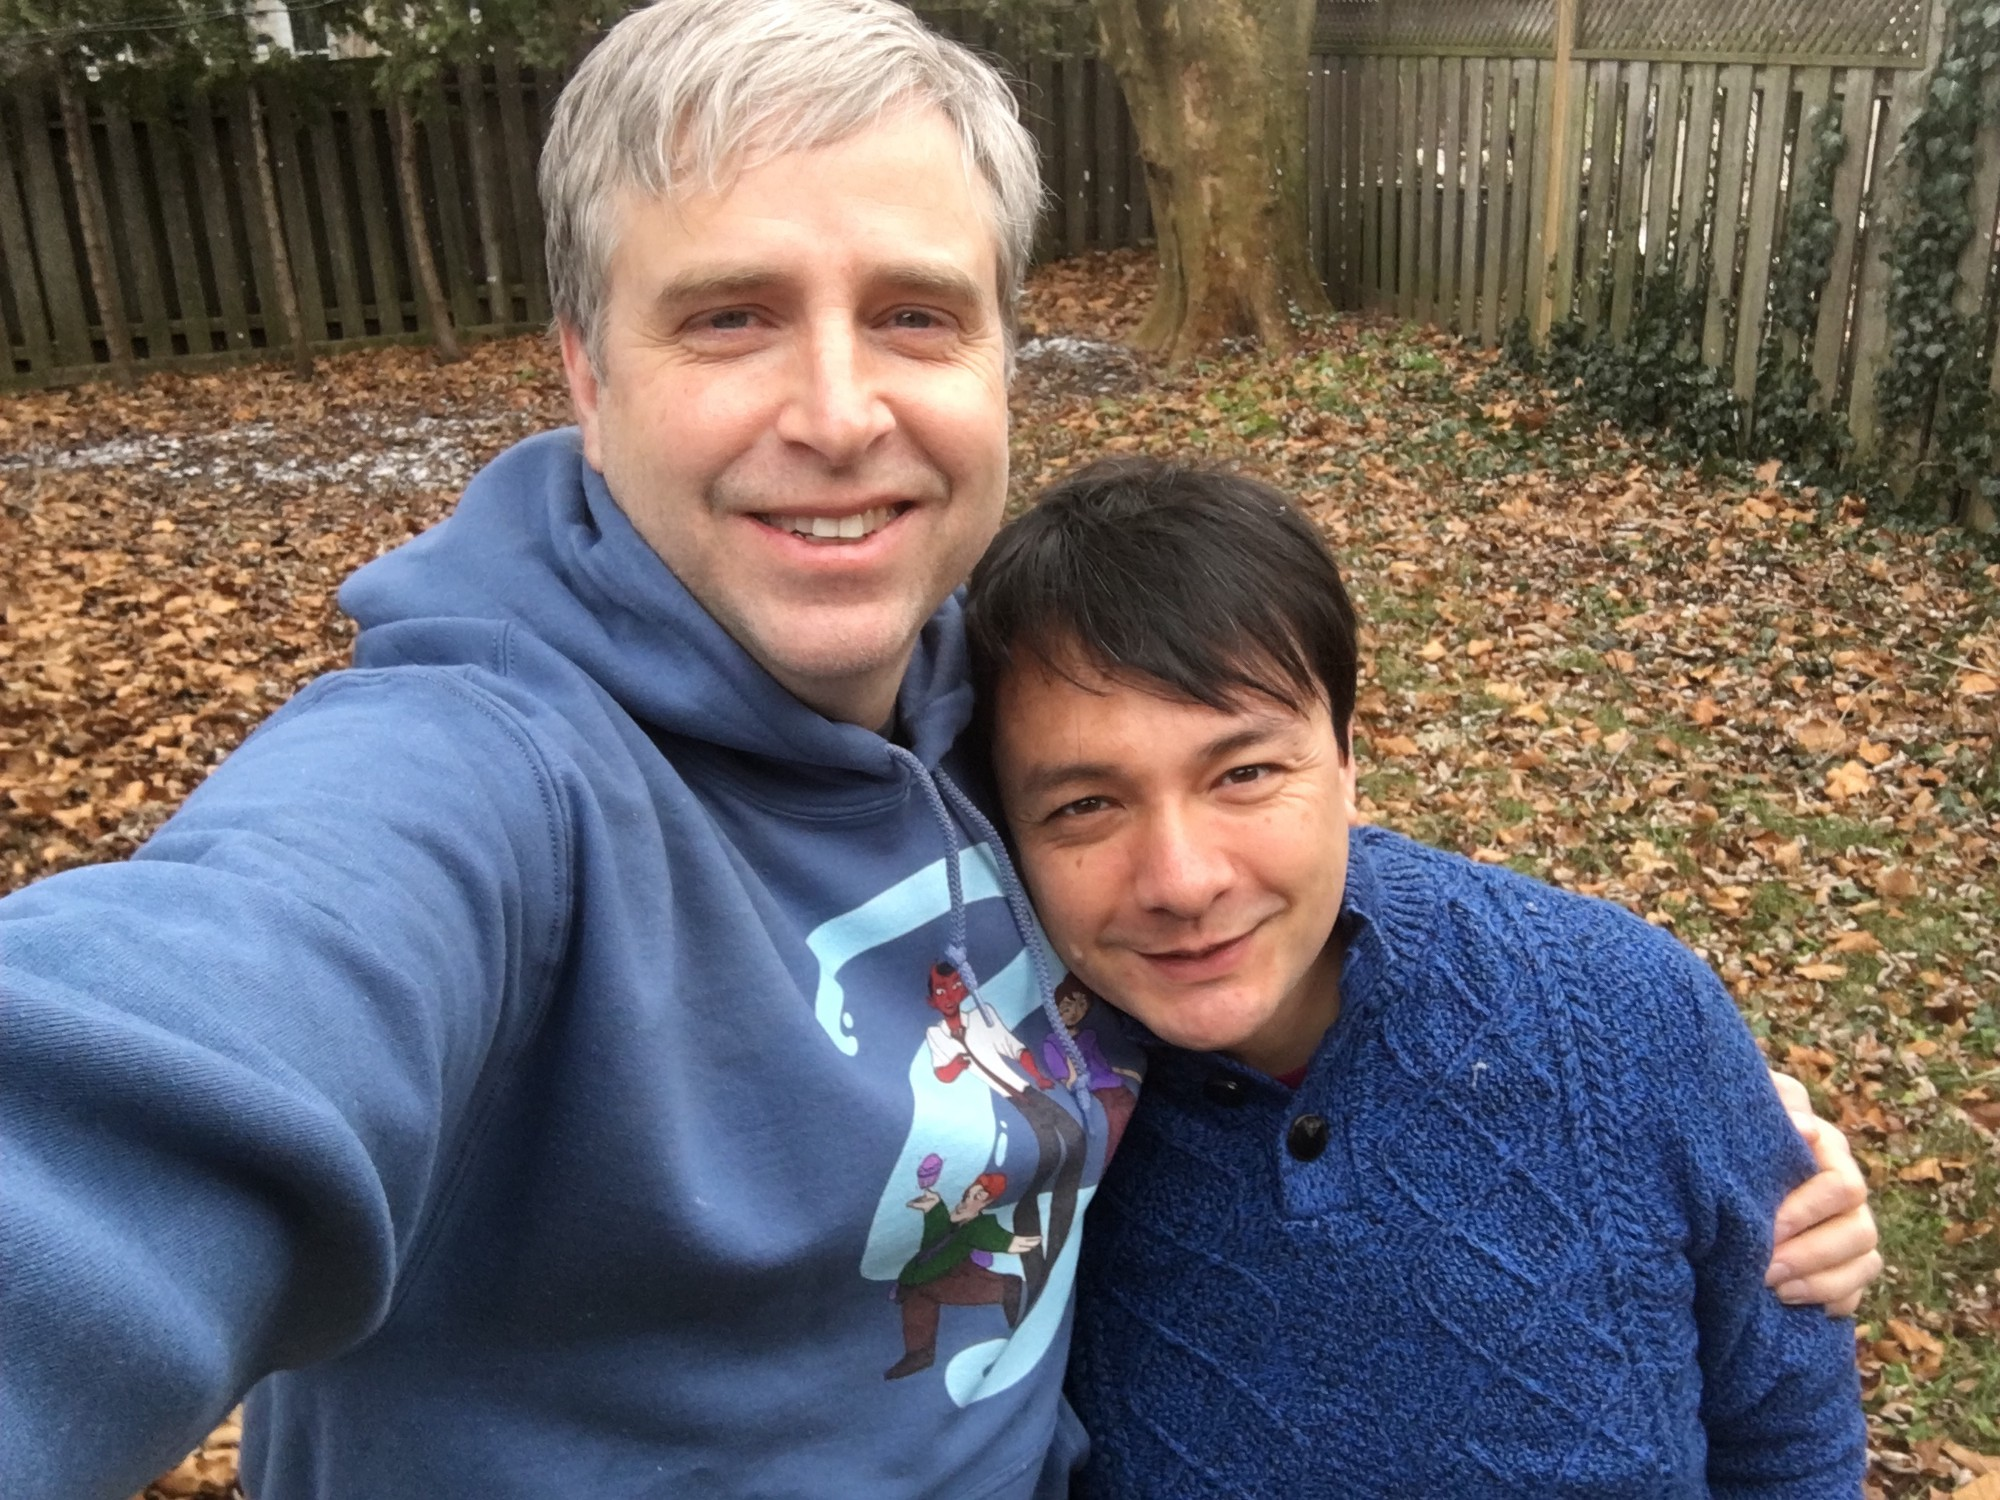 Eli and Sean taking a selfie together. Sean is wearing an other bothers sweatshirt and Eli a blue sweater.